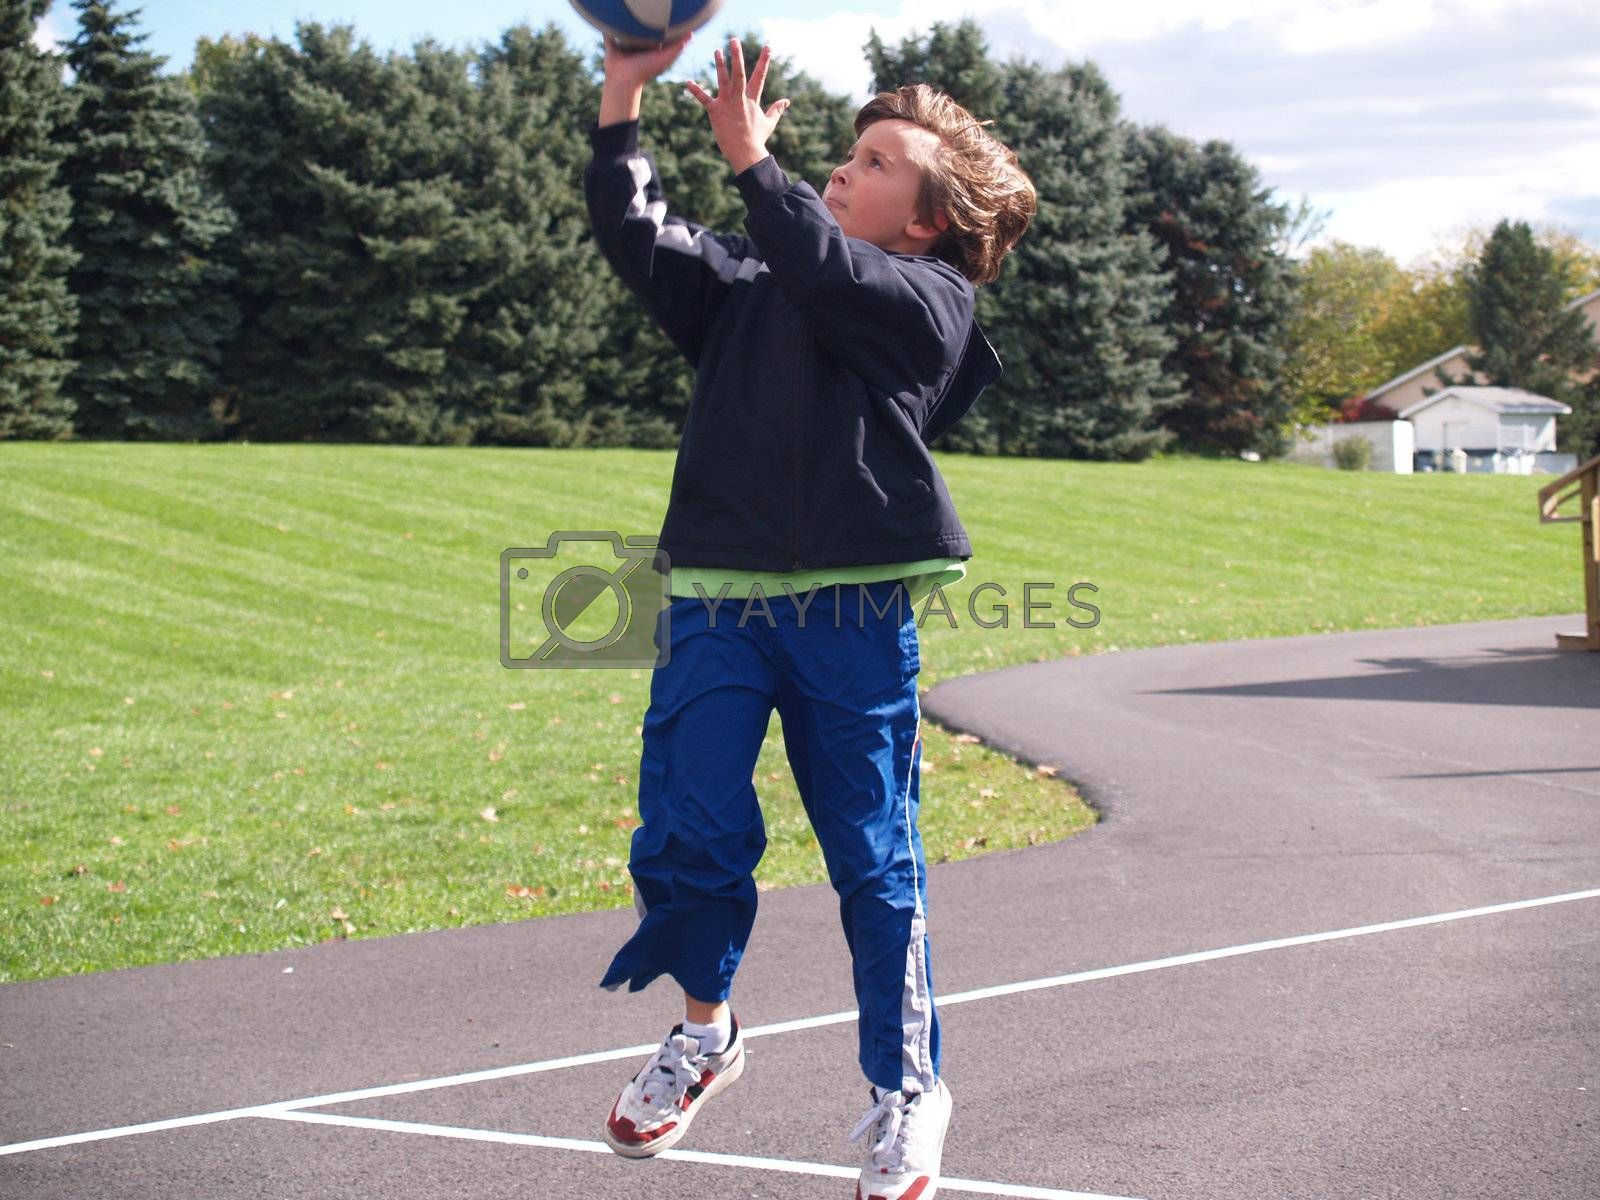 young boy throwing a basketball